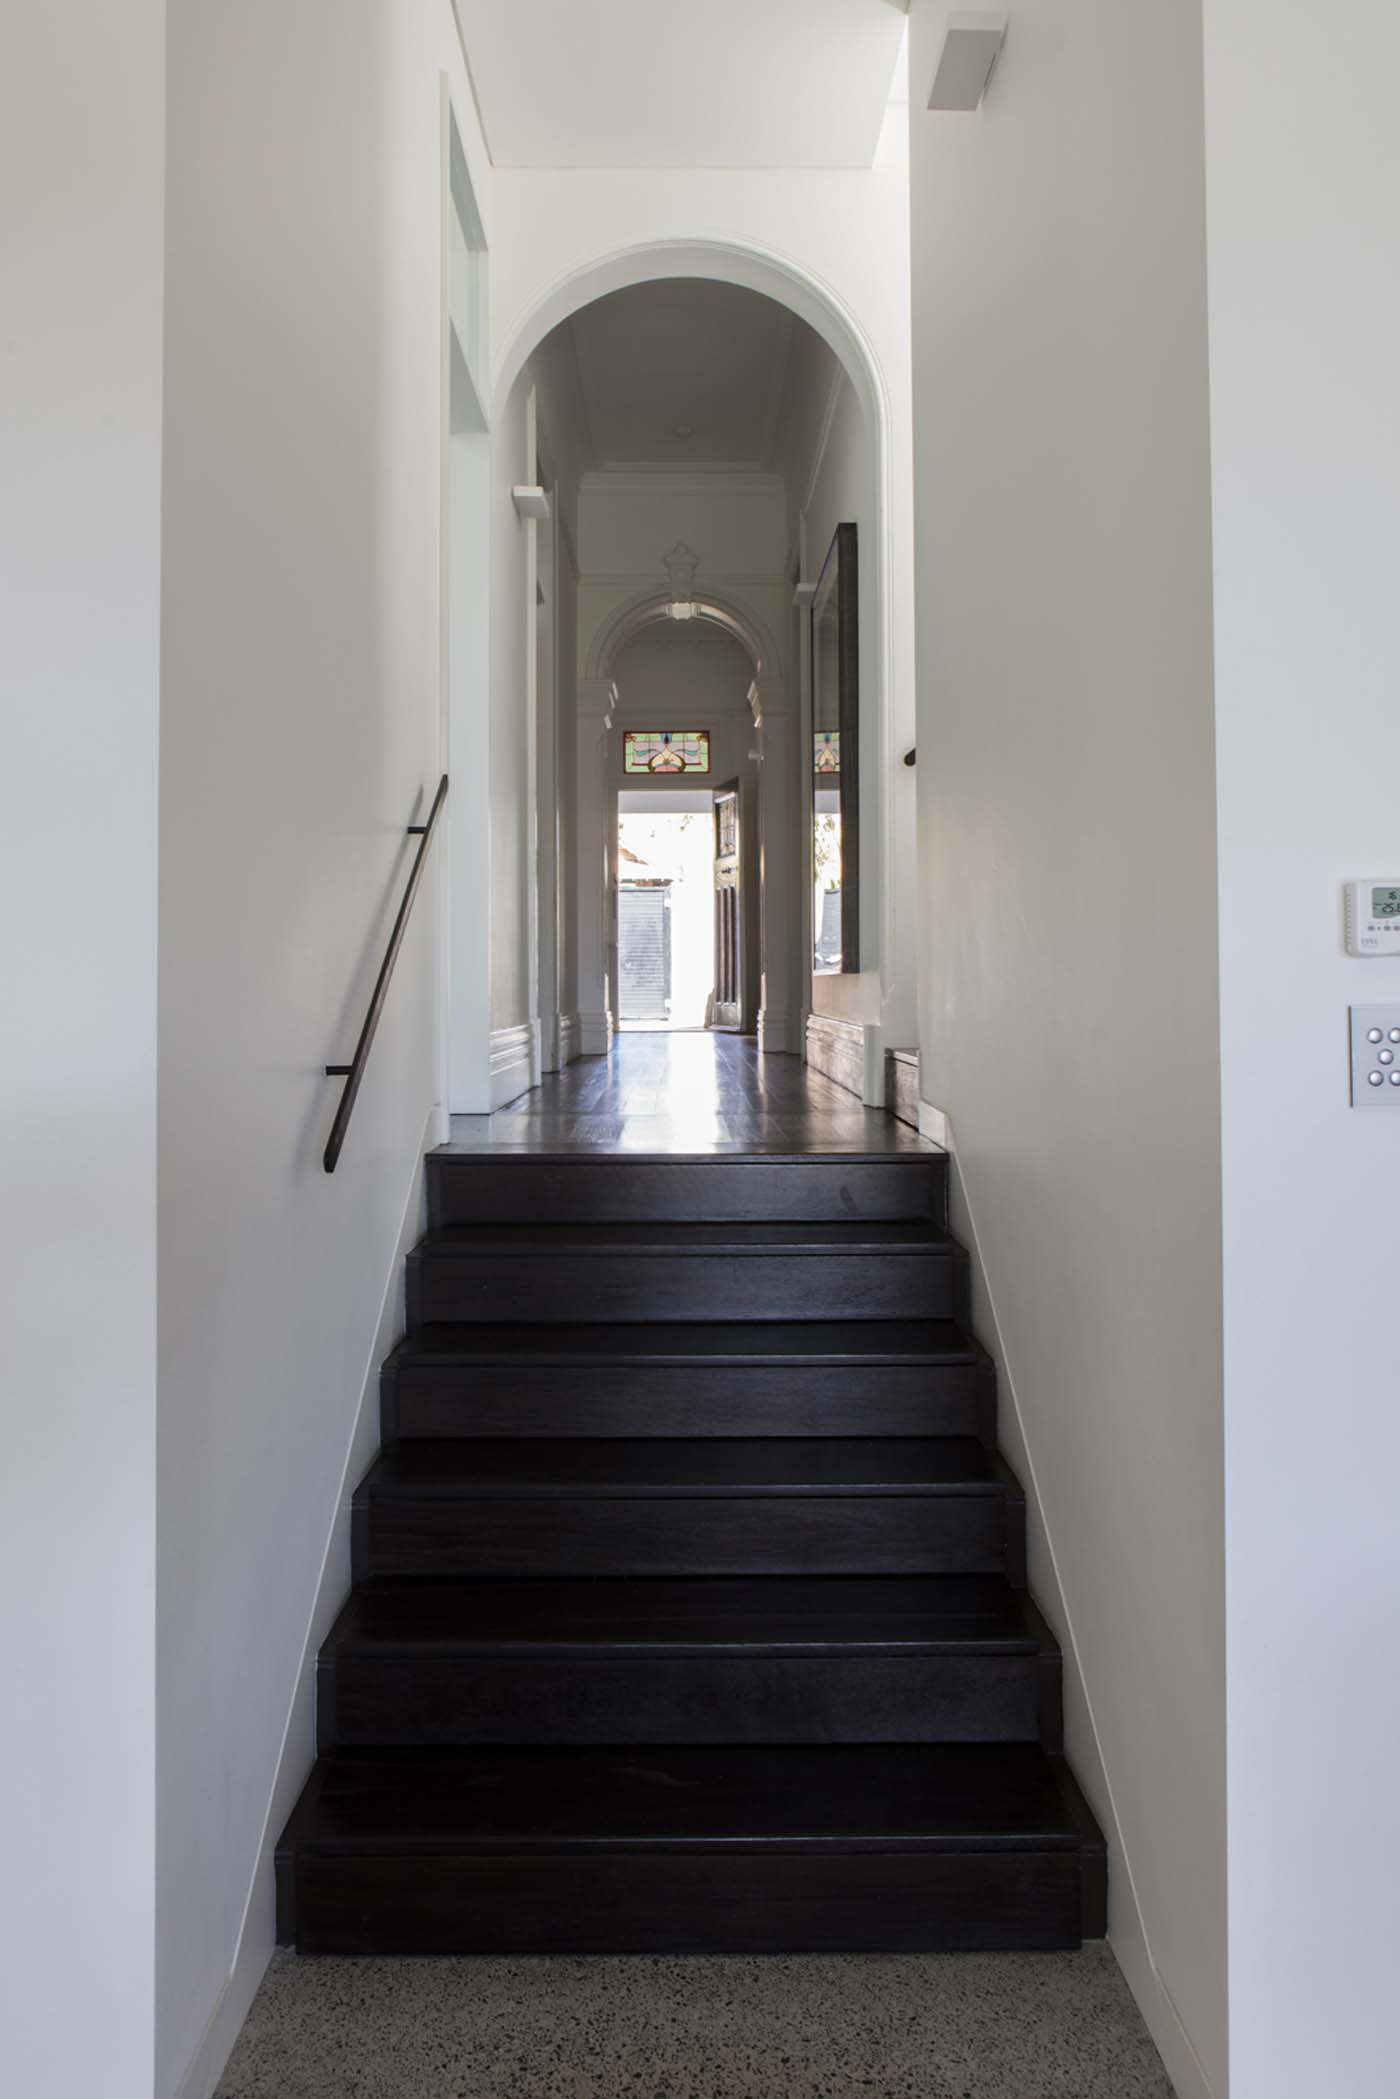 Sung Dobson house by Sam Crawford Architects, Sydney. Threshold between old and new.